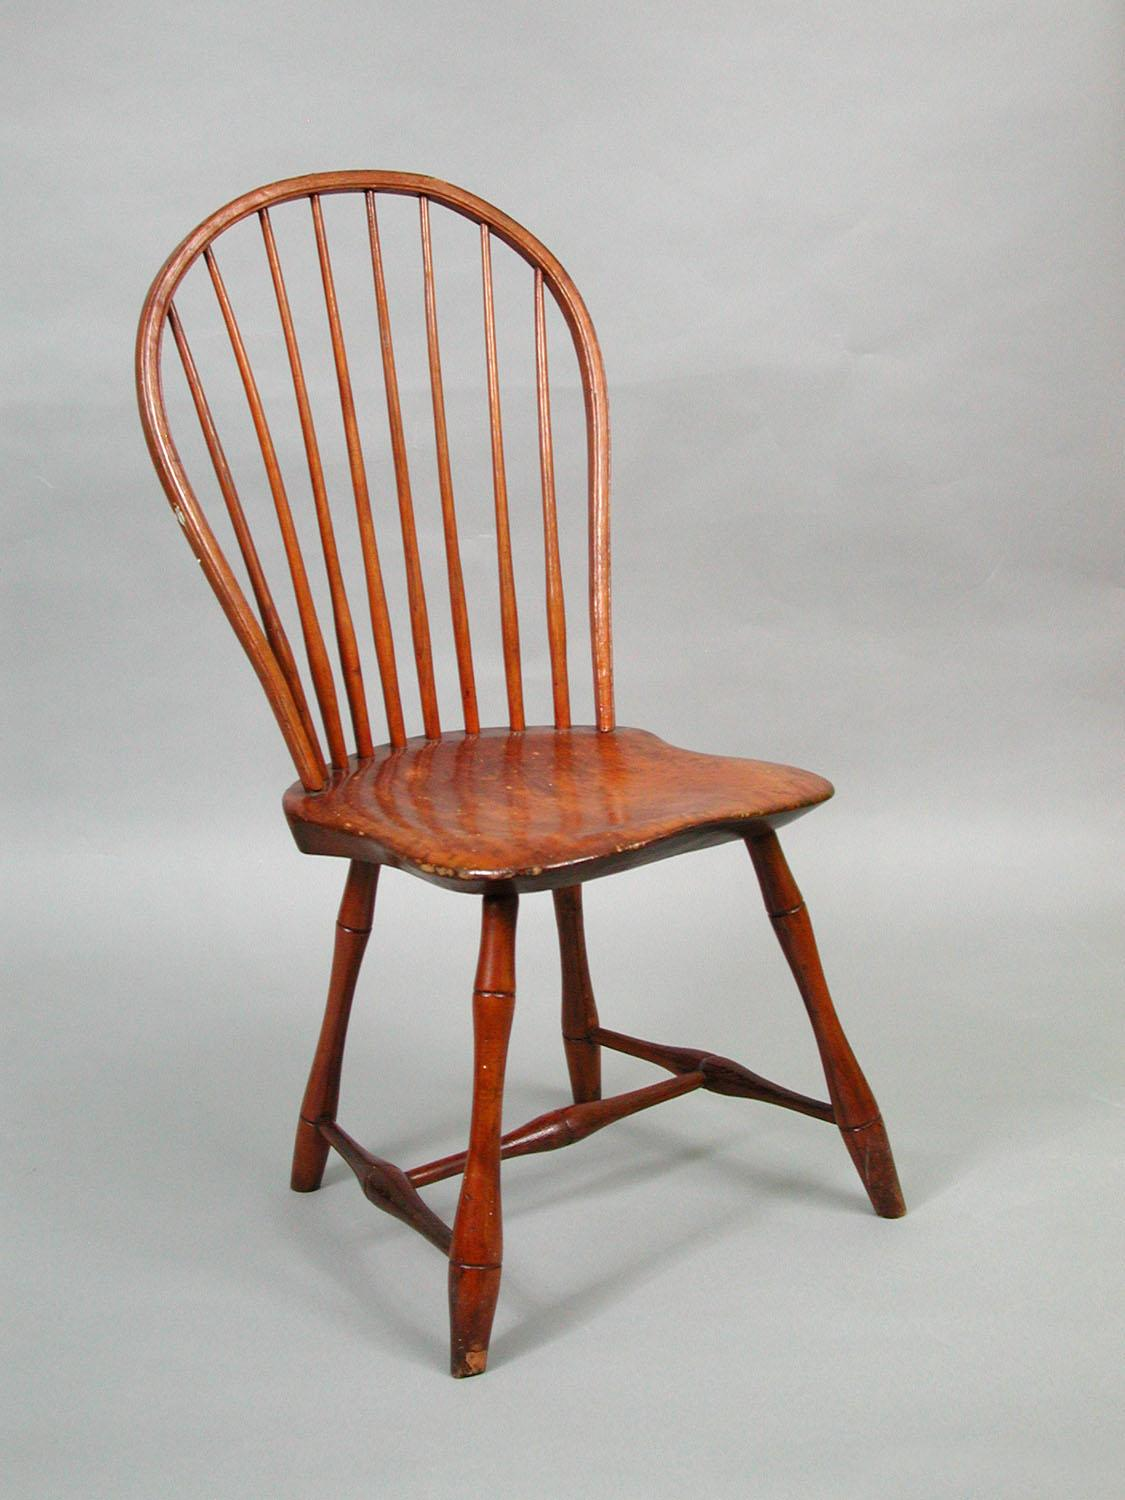 Elegant Windsor Side Chair Made By Amos Denison Allen, Windham, CT, 1795 1810.